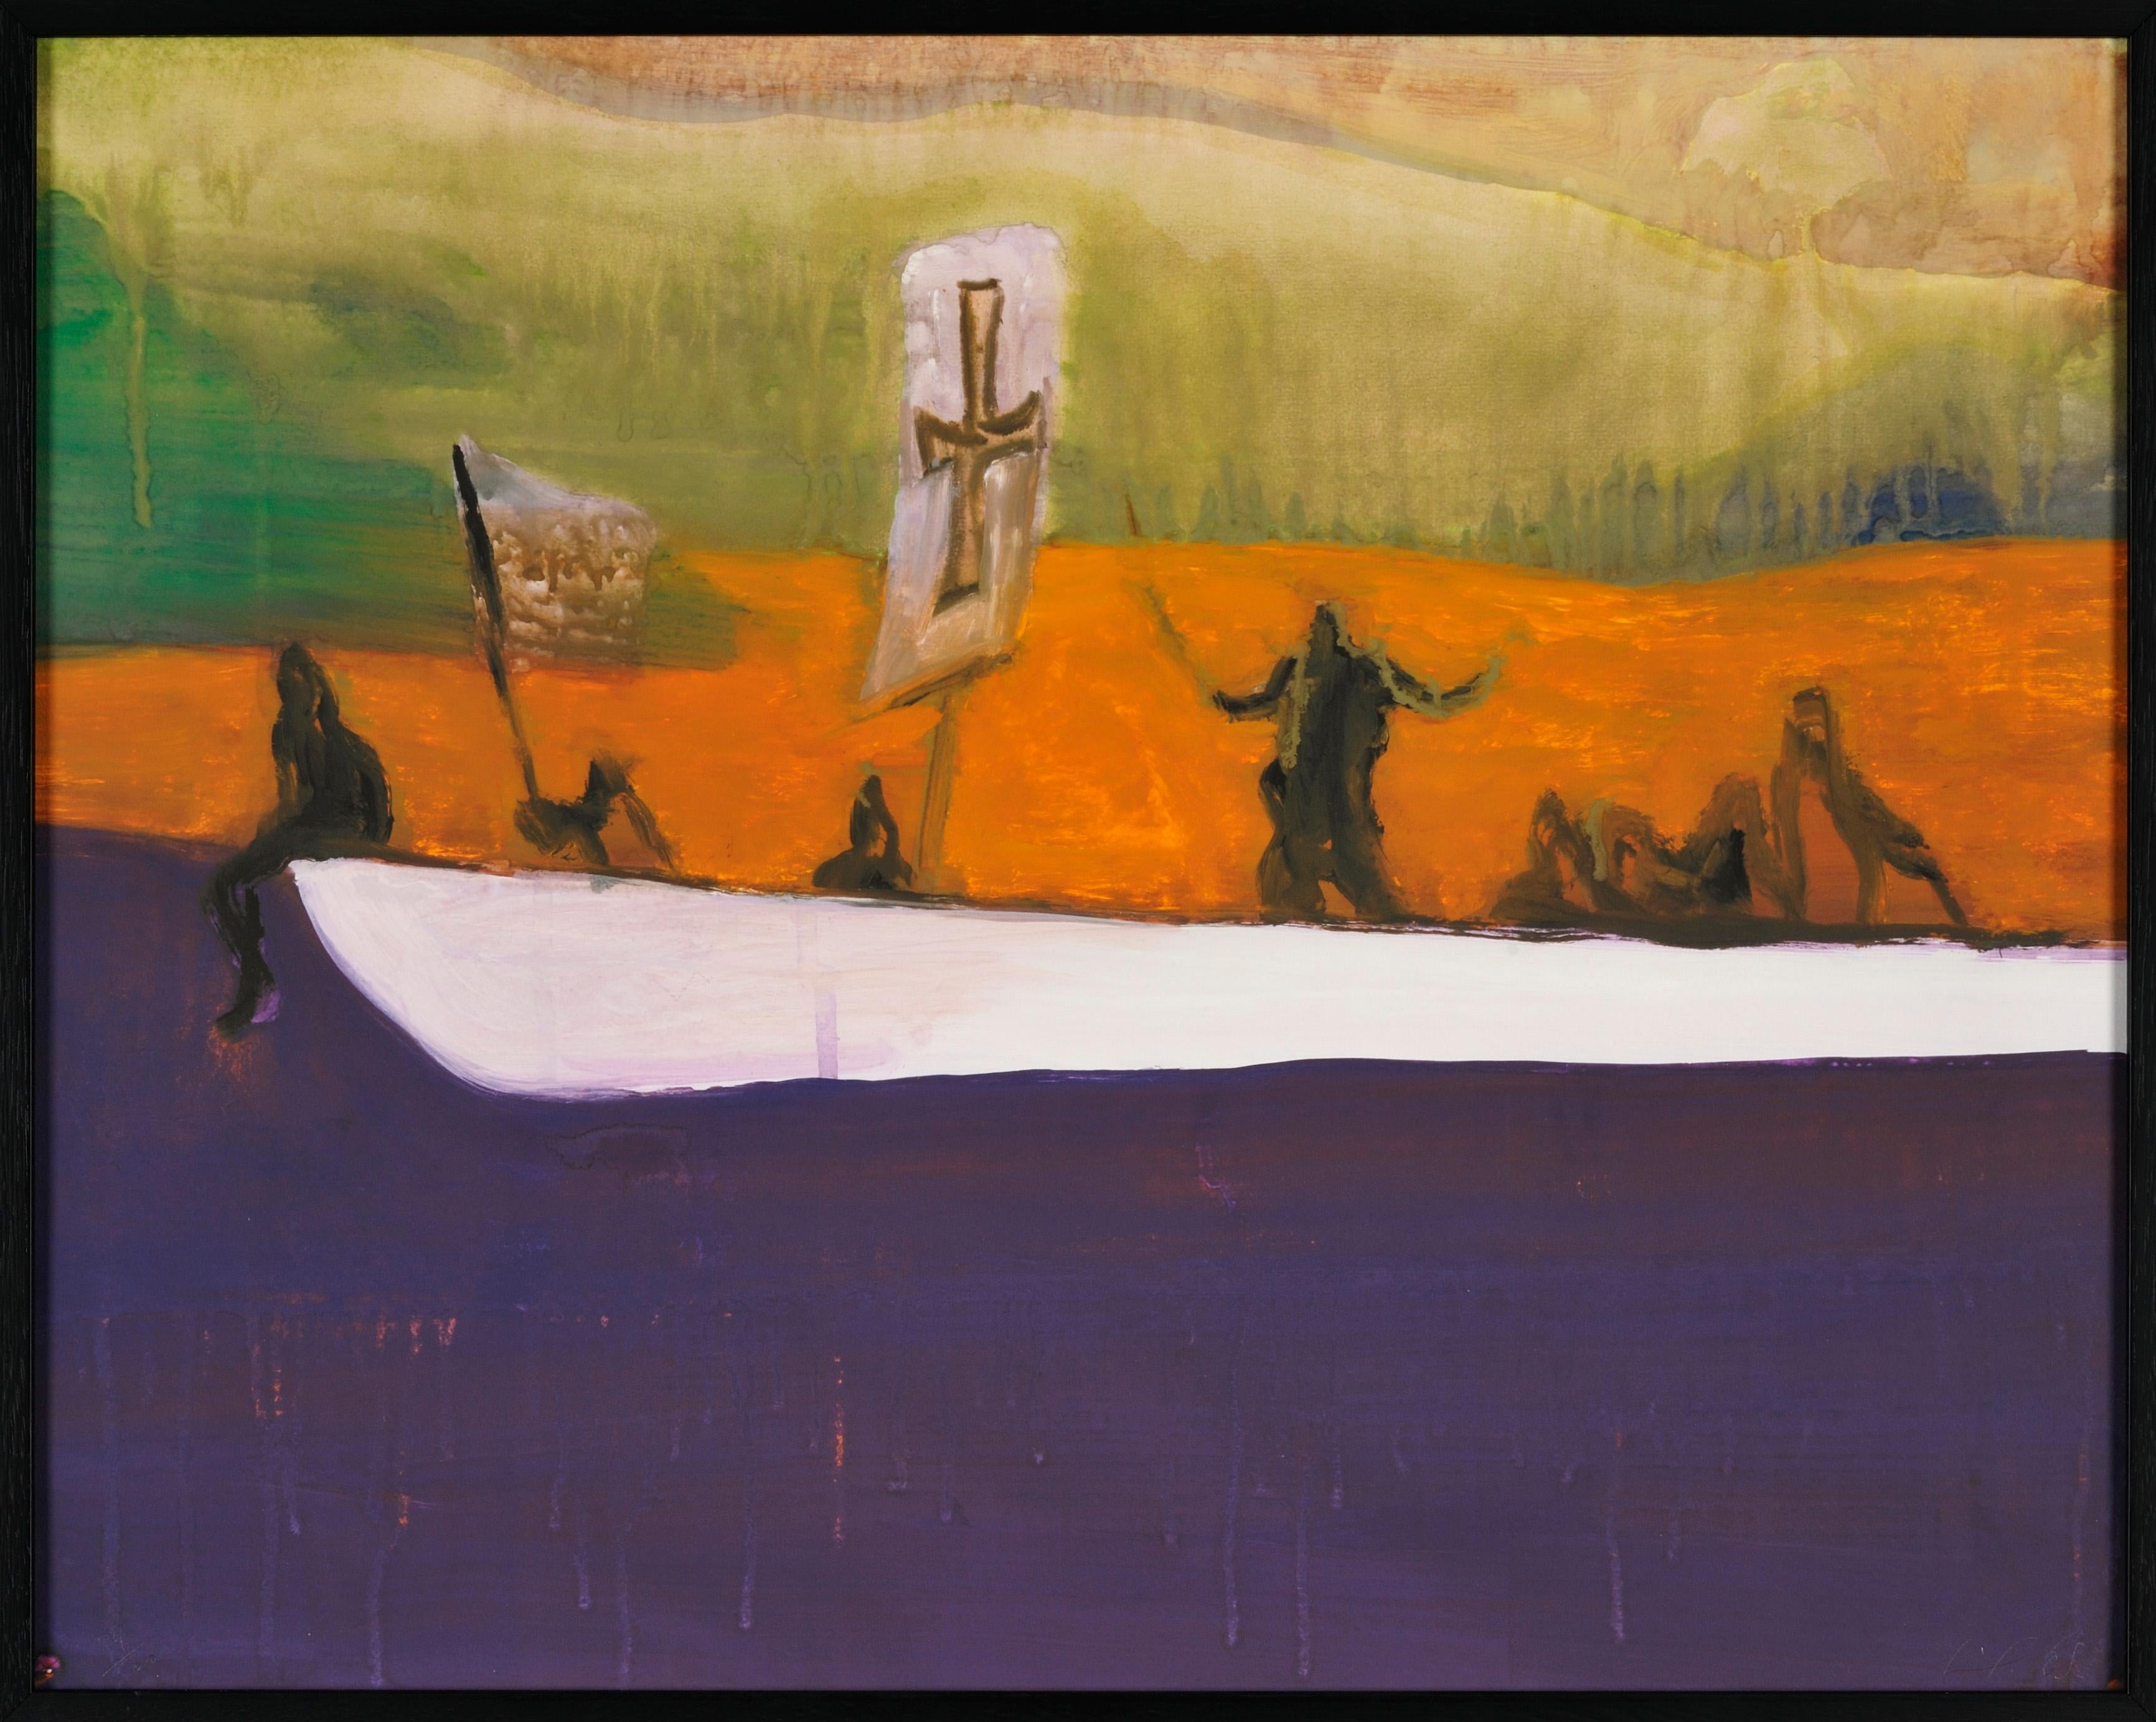 Canoe - Peter Doig, Contemporary, 21st Century, Etching, Magic Realism, Edition